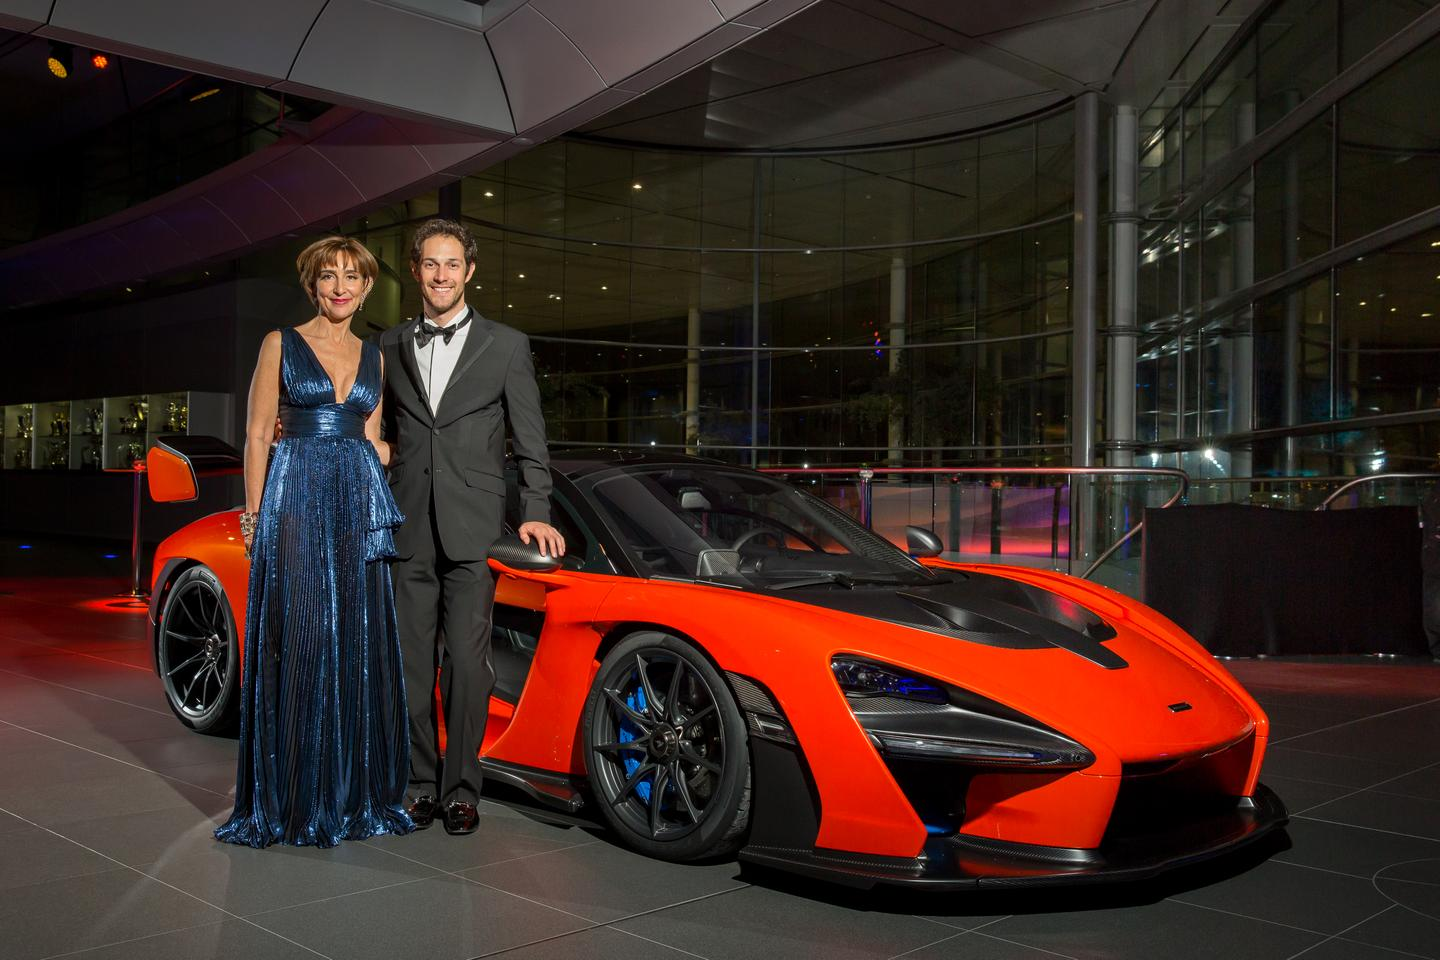 Three Sennas: Viviane, Bruno Senna and the new McLaren Senna. Viviane is the sister of Ayrton and the mother of racing driver and McLaren ambassador, Bruno Senna. The new McLaren Senna raised £2 million for underprivileged children and youngsters in Brazil via the Ayrton Senna Institute.